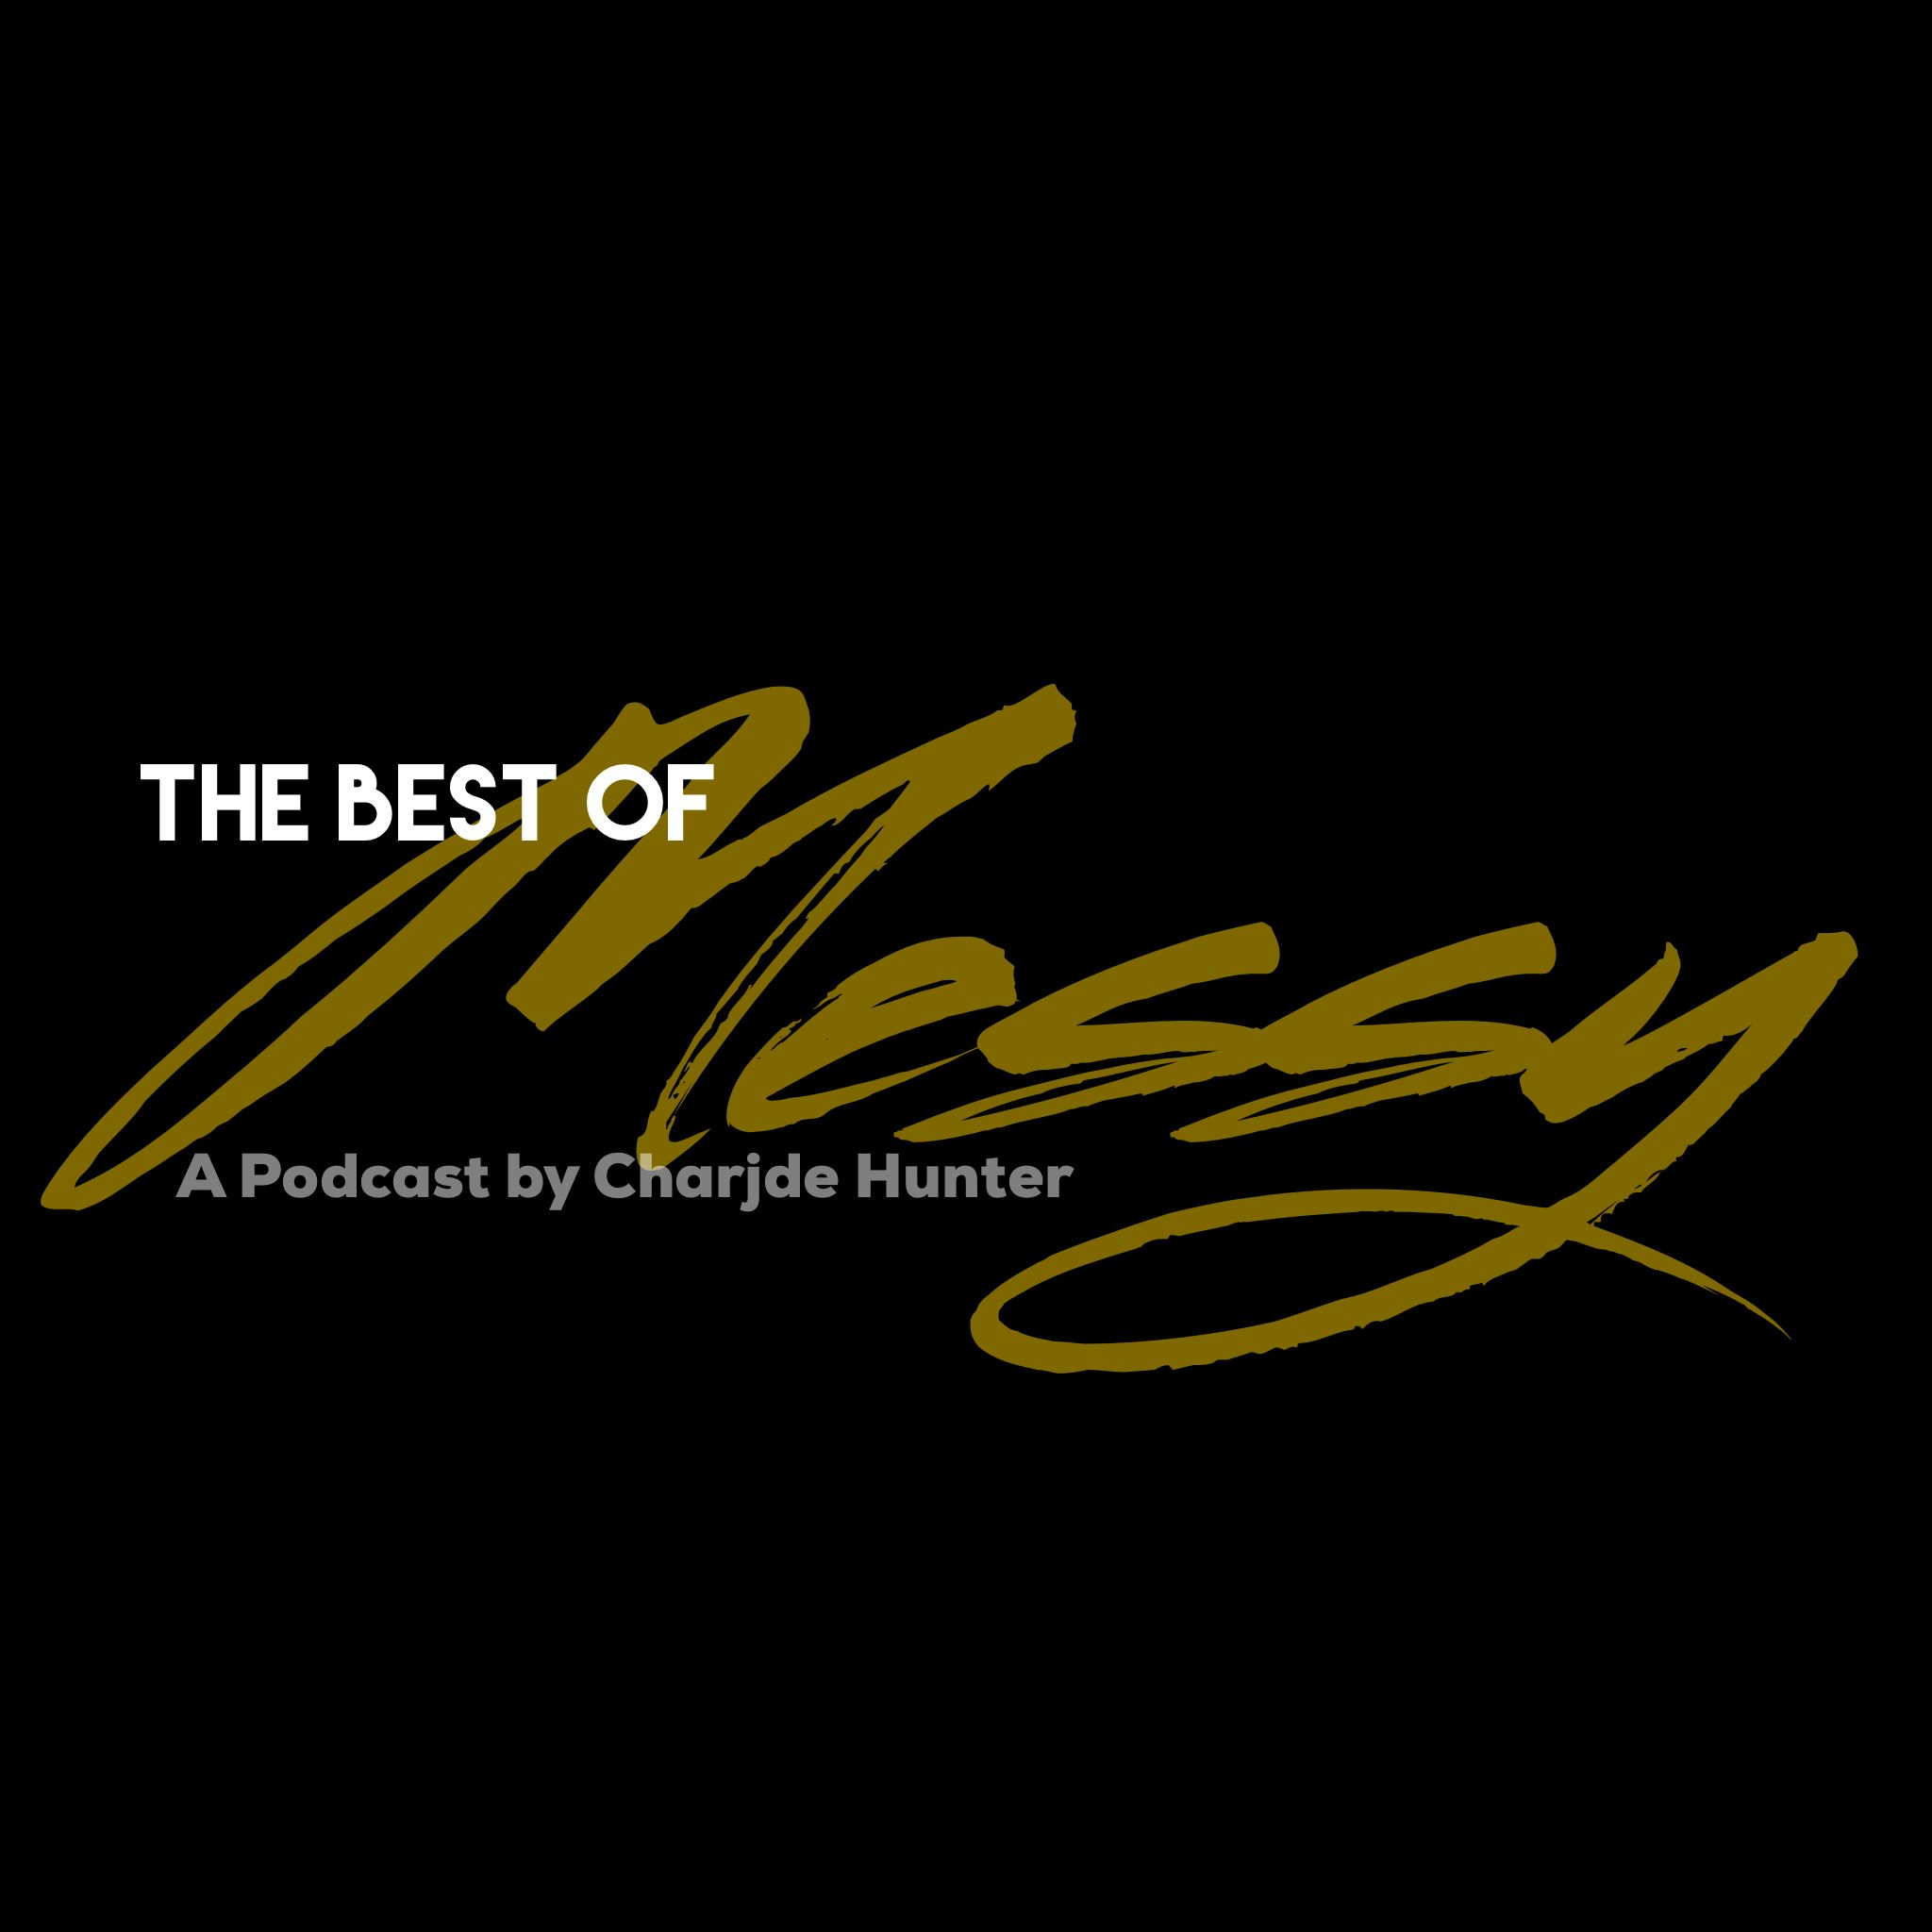 Messy Podcast (The Best of)